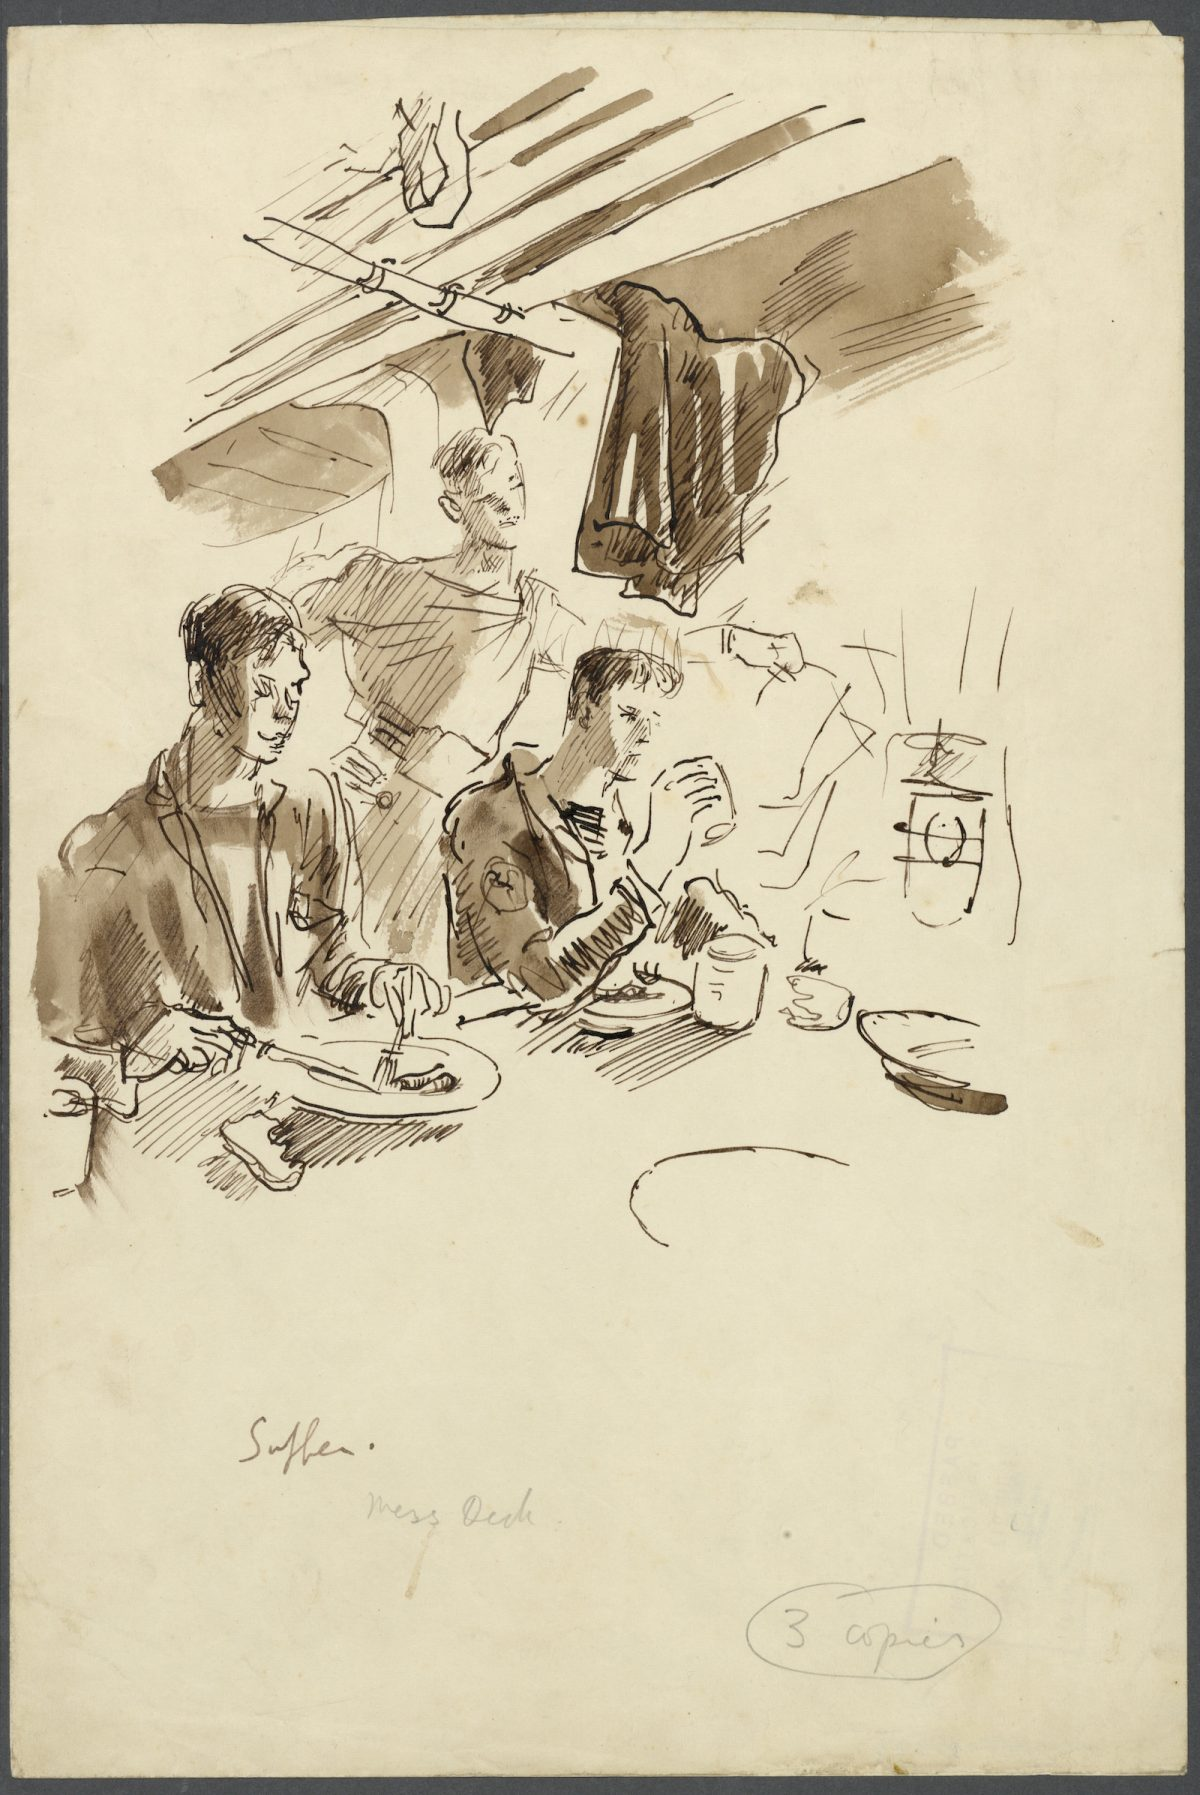 Cecil Beaton, war, drawings, Royal Navy